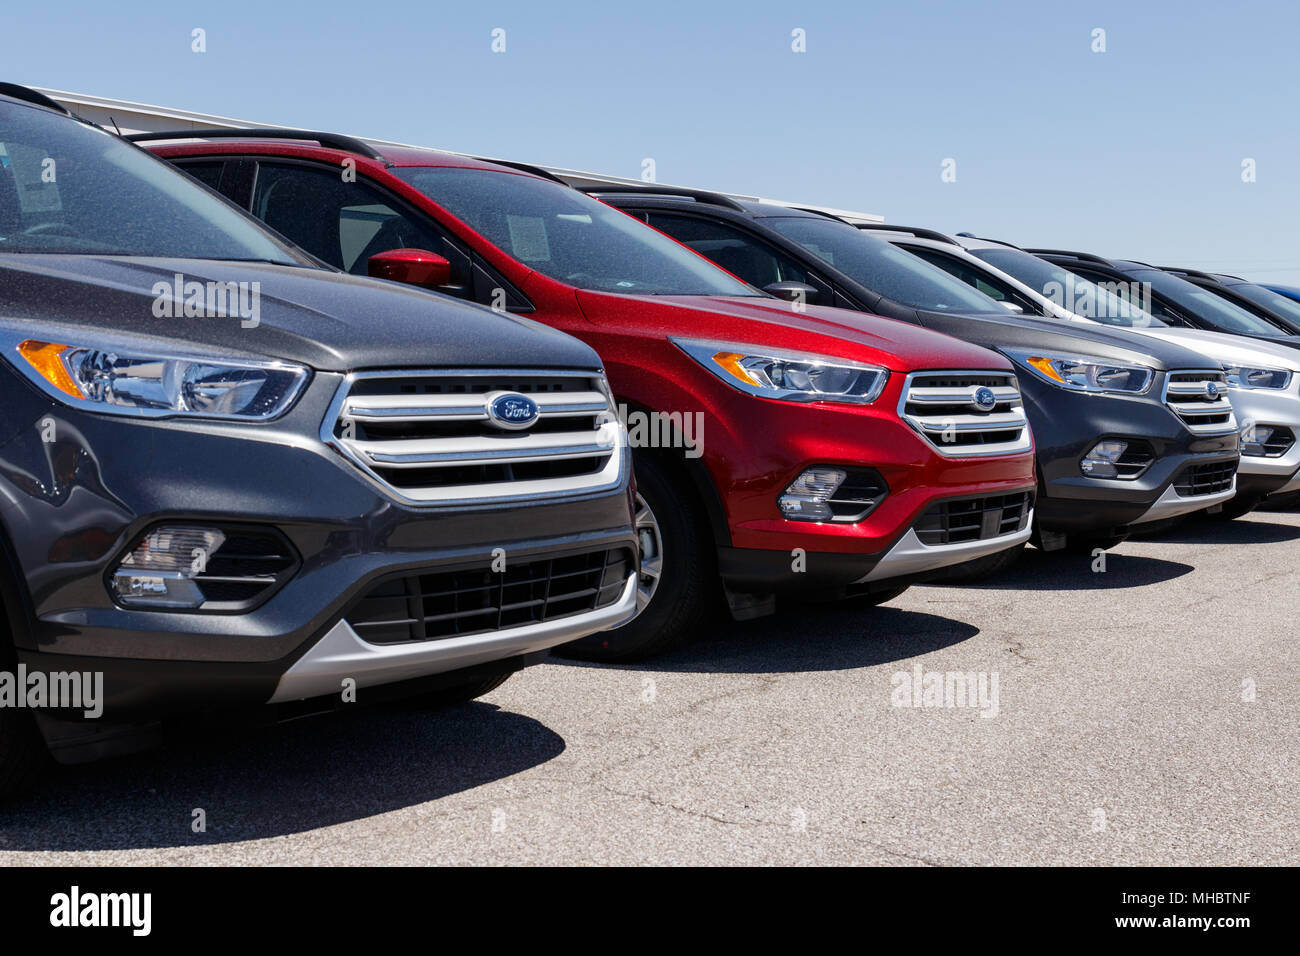 Lafayette Circa April  Local Ford Car And Truck Dealership Ford Sells Products Under The Lincoln And Motorcraft Brands Xi